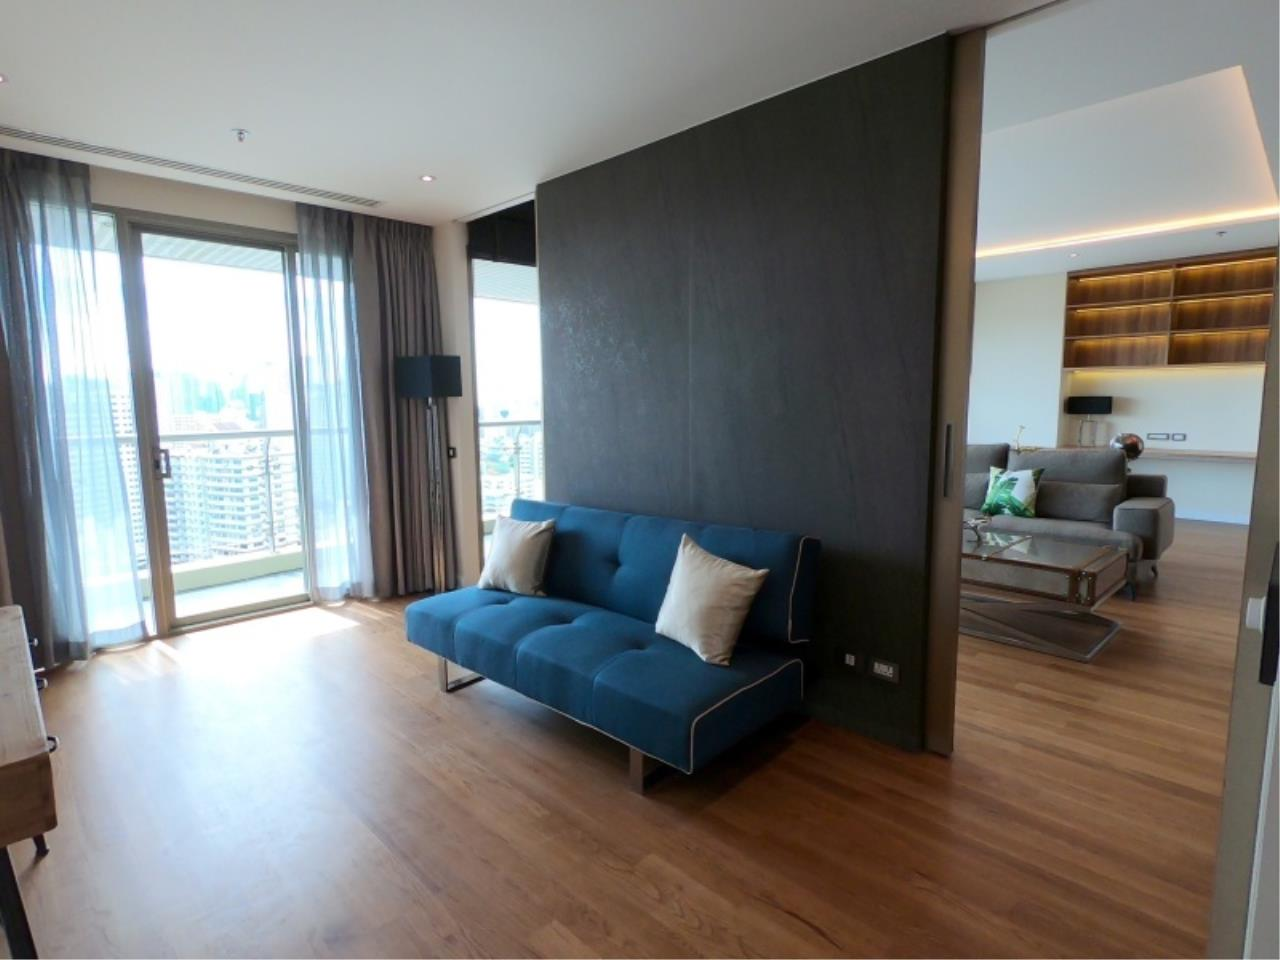 Century21 Skylux Agency's The Lakes / Condo For Rent / 3 Bedroom / 210 SQM / BTS Asok / Bangkok 4